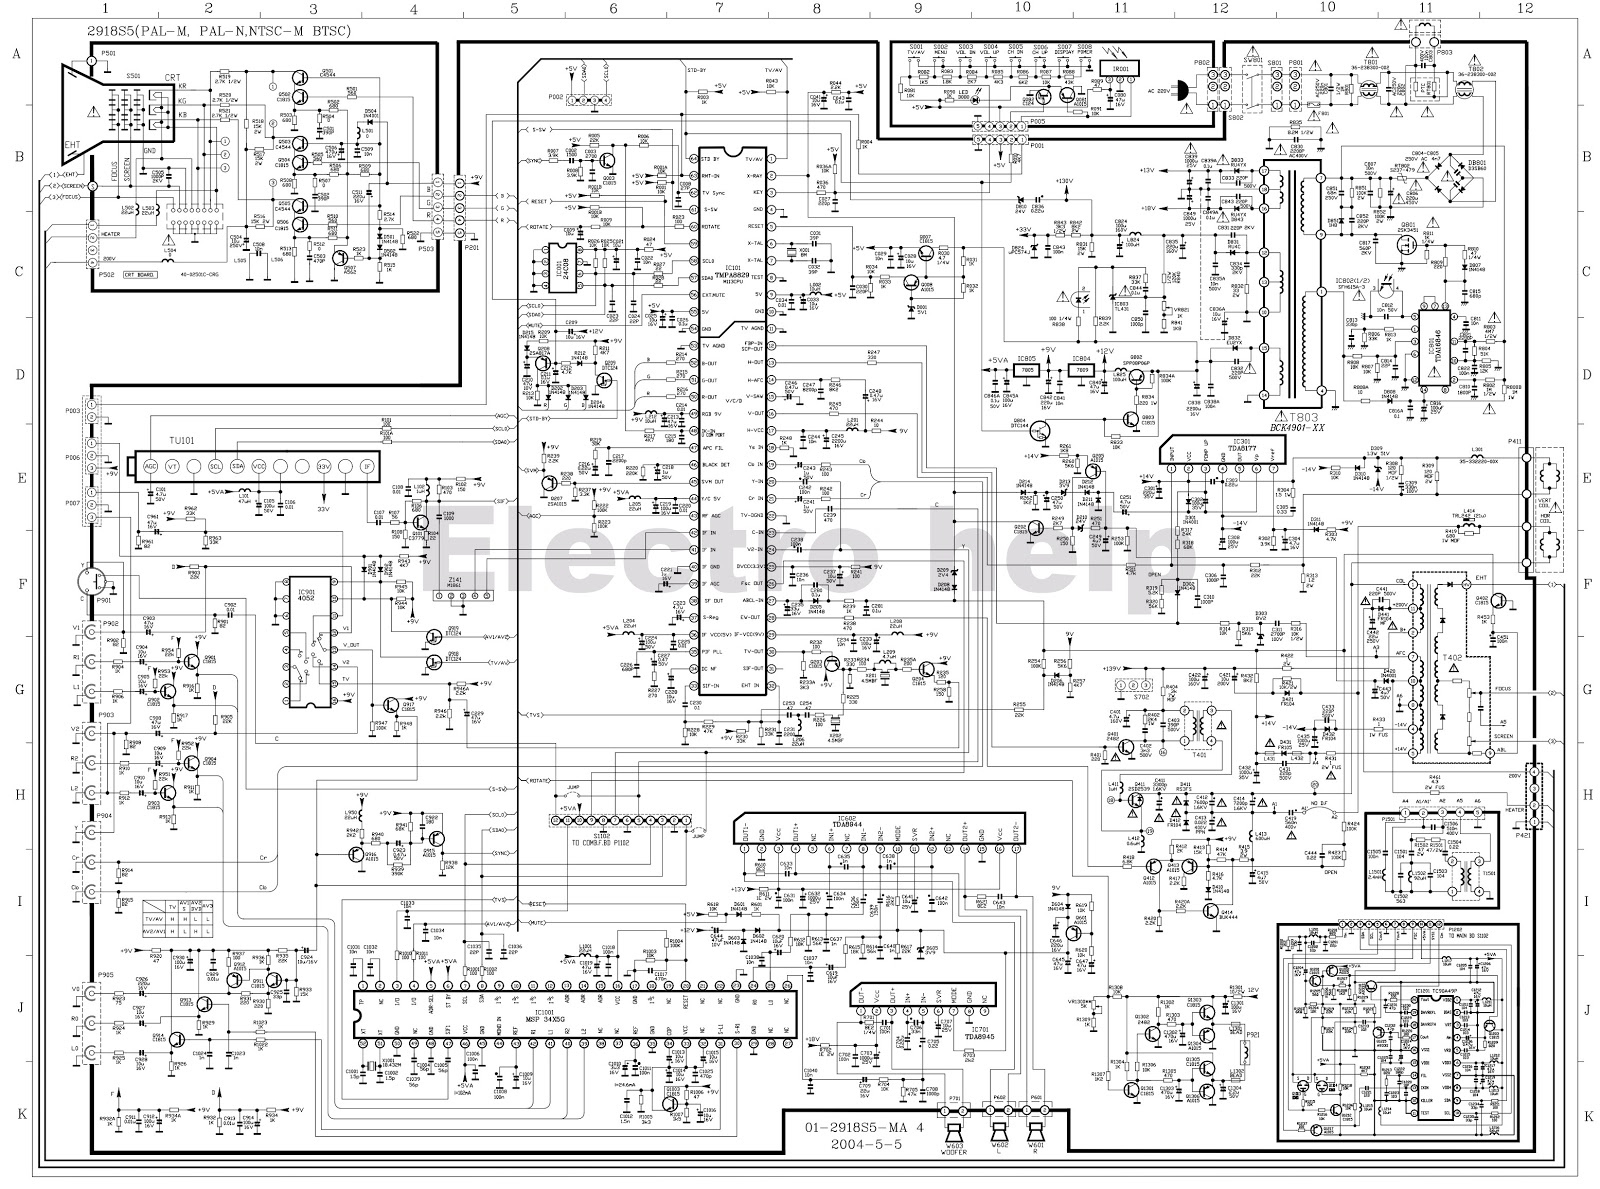 small resolution of used ics 24c08 tmpa8829 4052 msp34x5g tda8944 tda8945 tc90a49p manguonblog colour tv kit circuit diagram